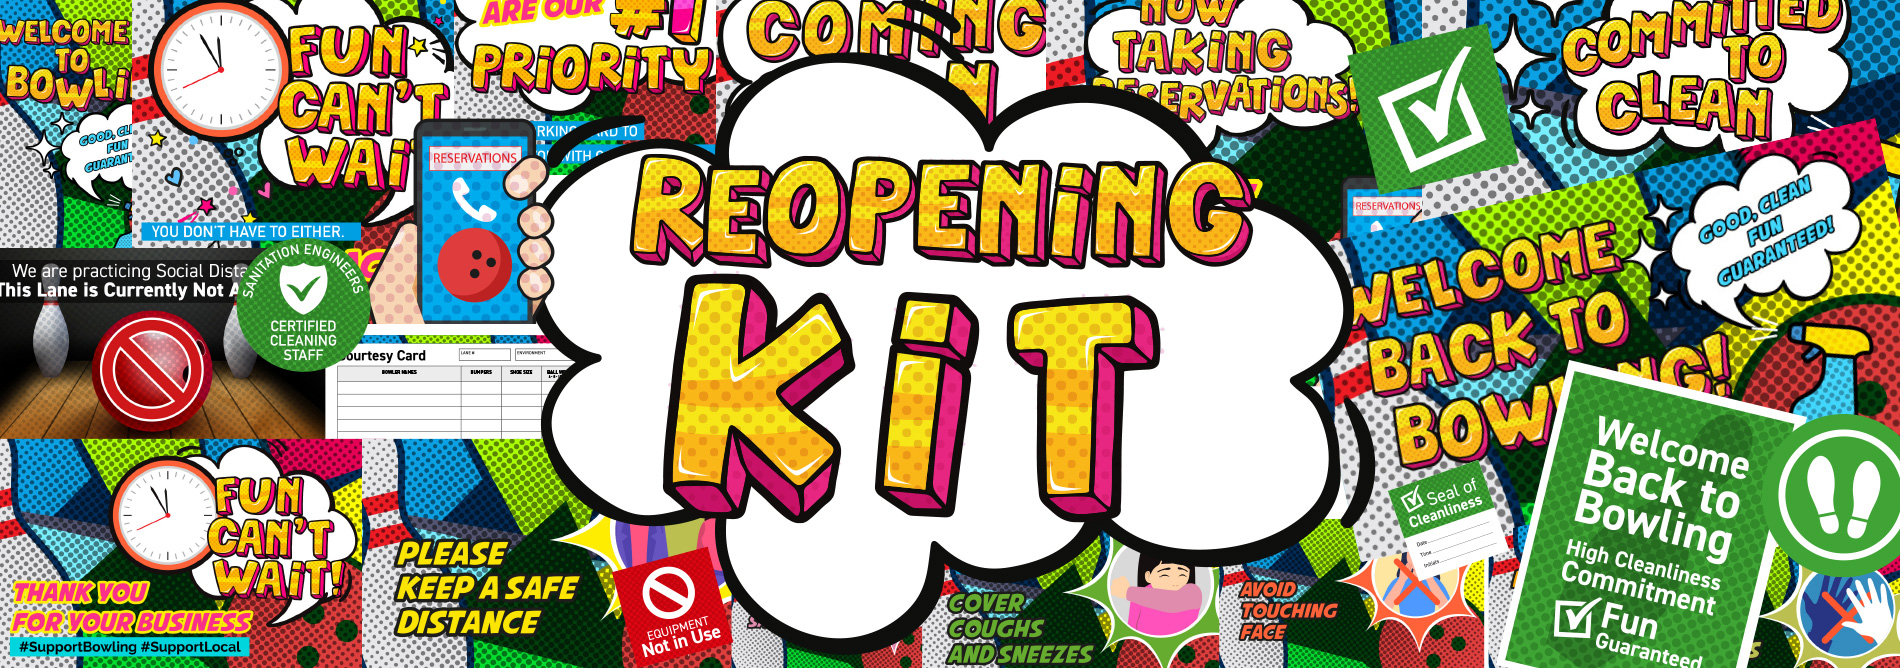 Bowling-QubicaAMF-reopening-kit-banner.jpg